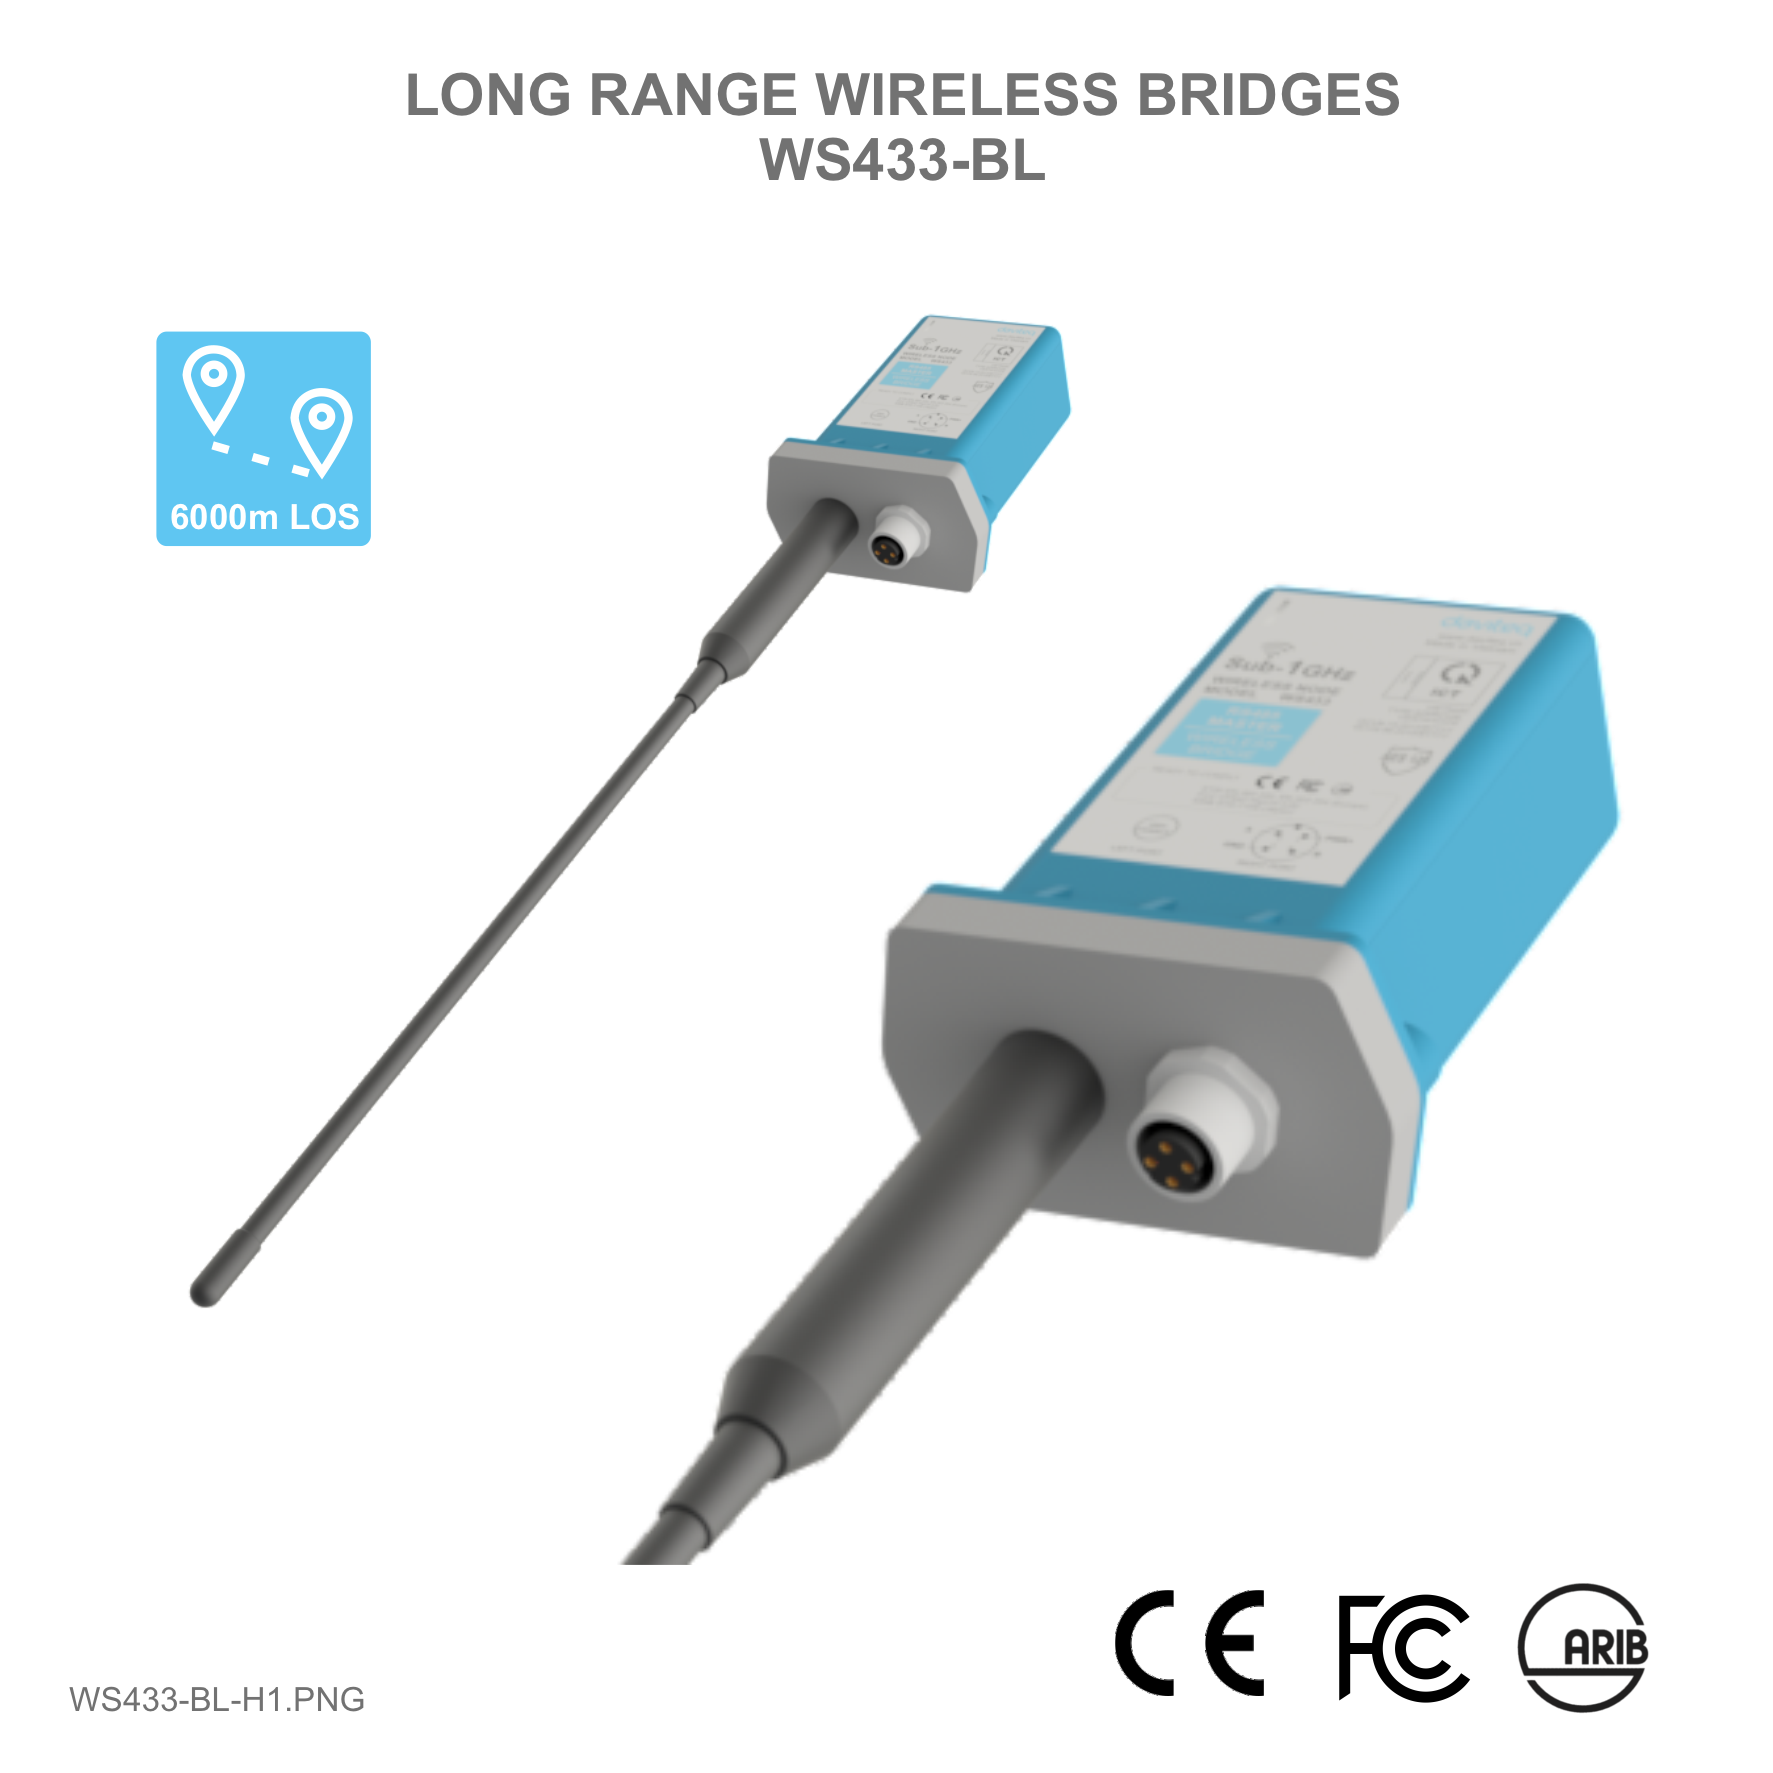 Long Range Wireless Bridges